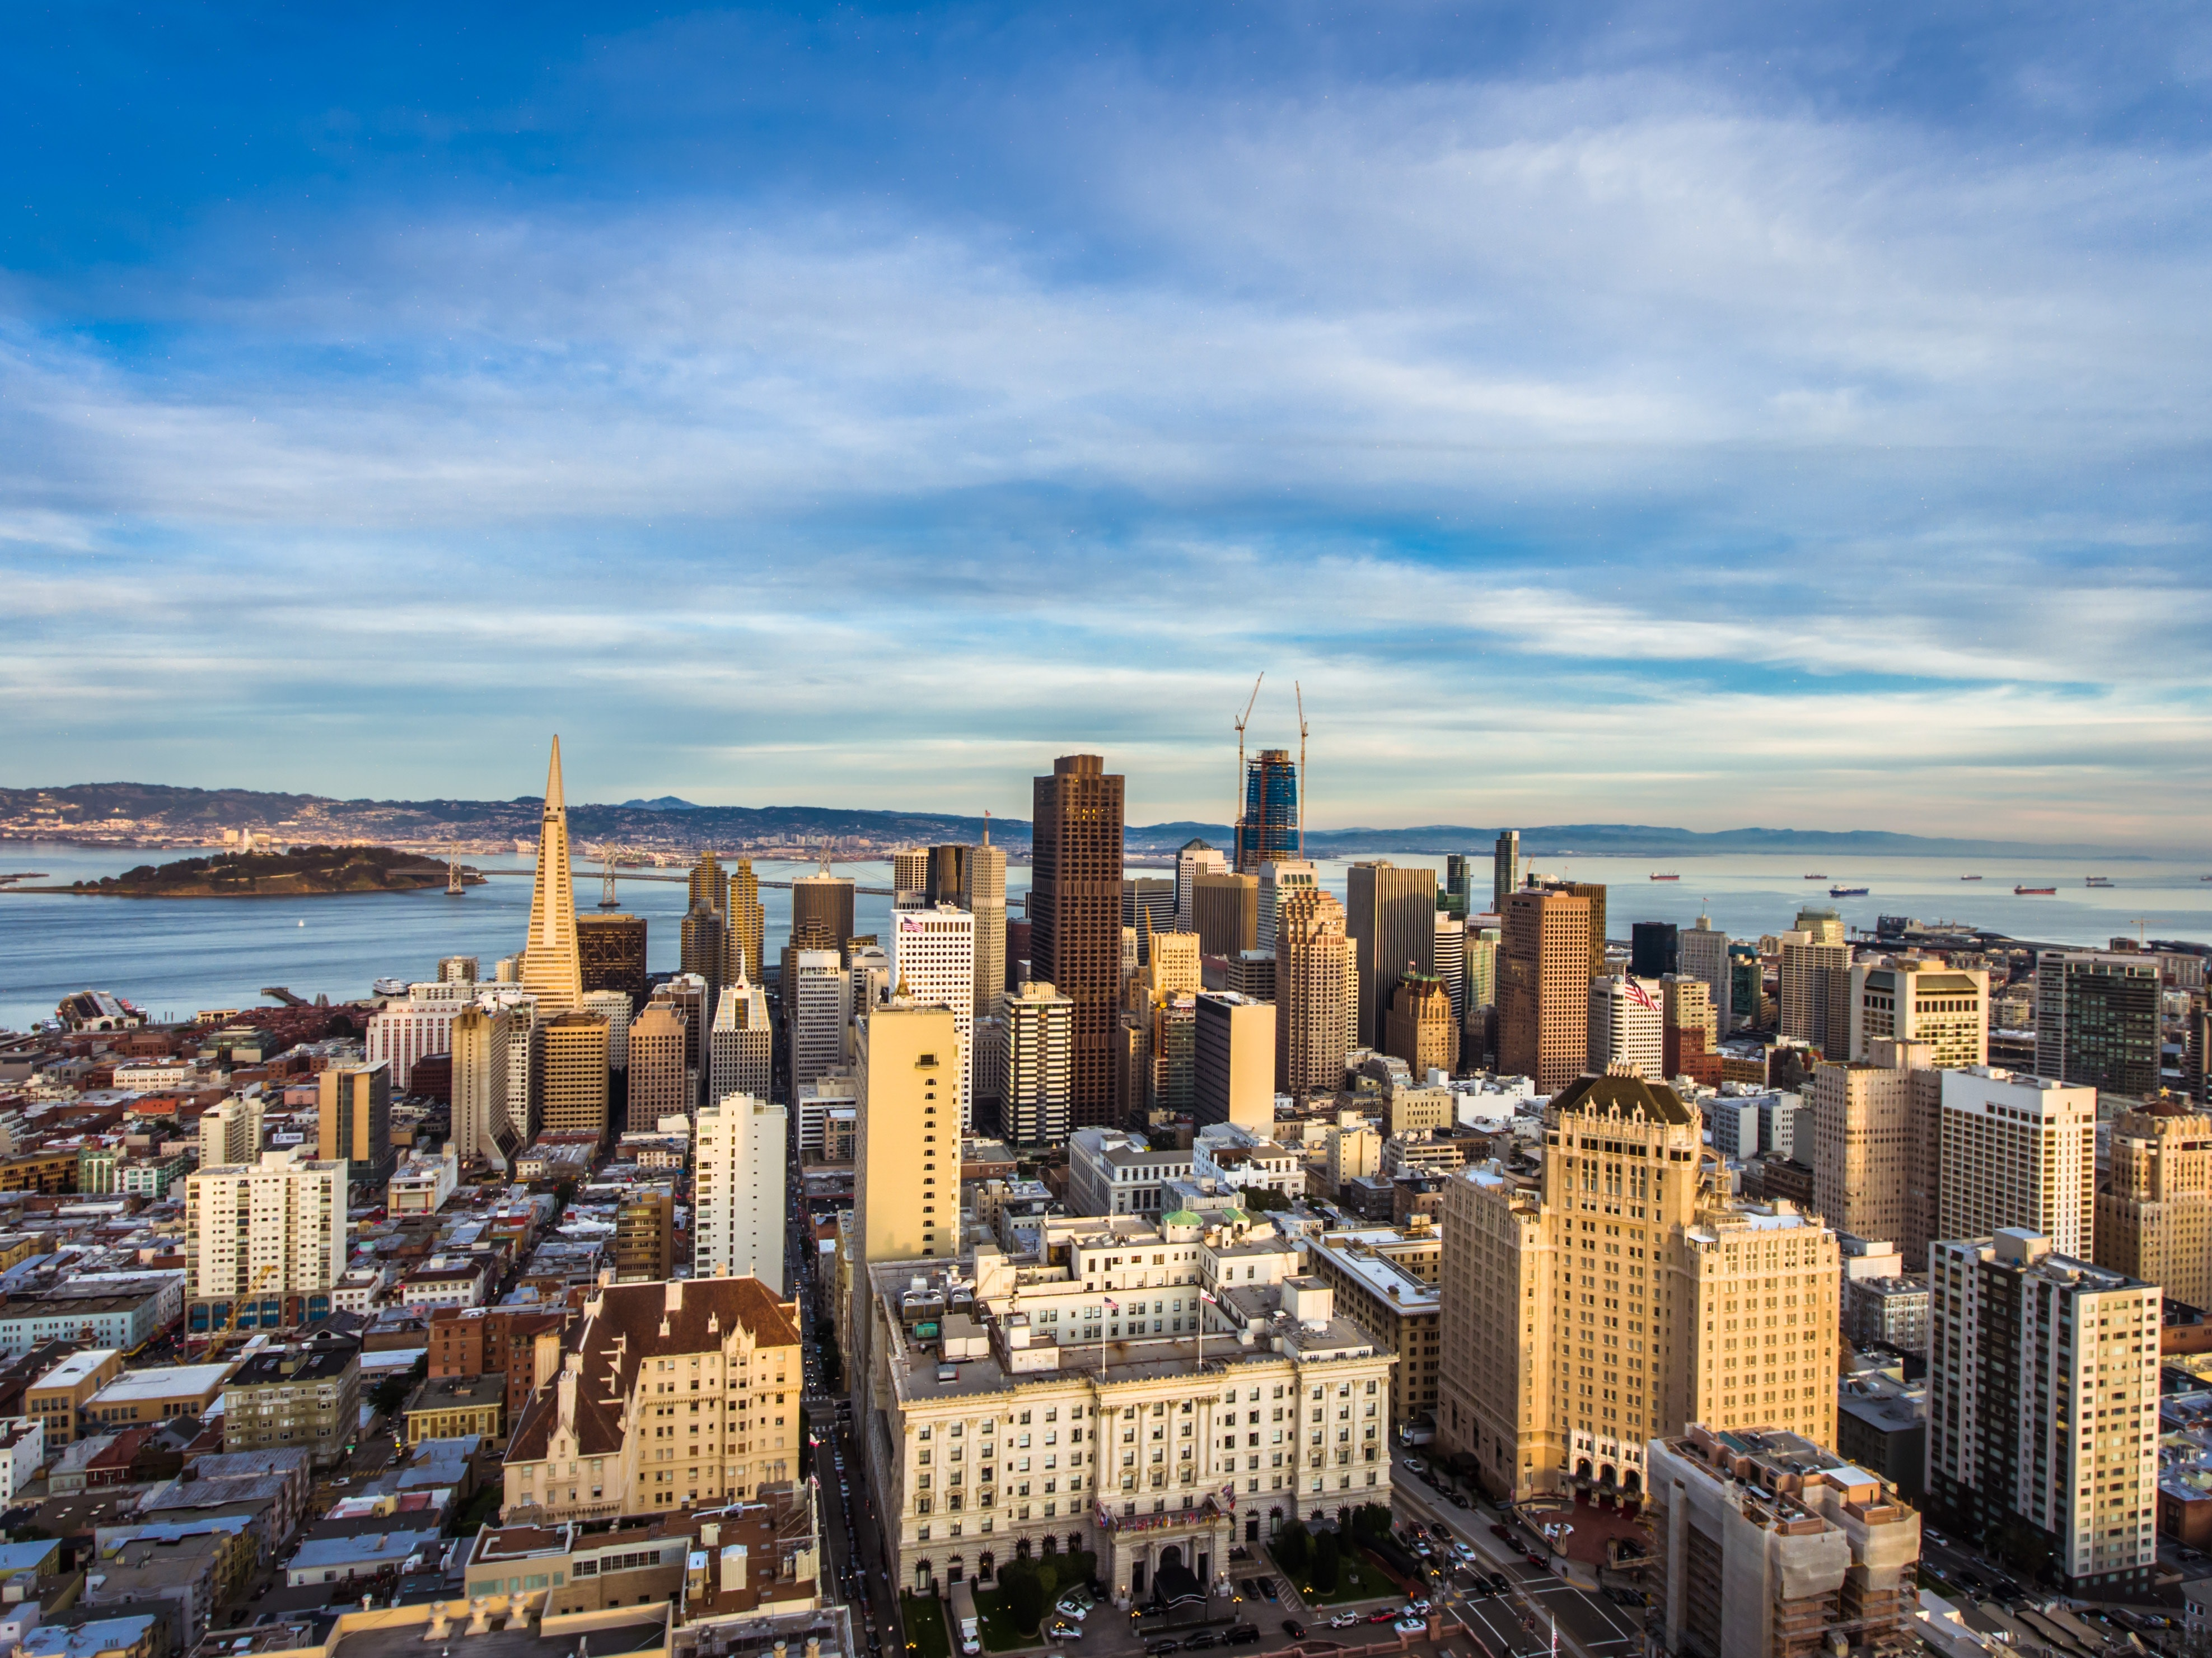 High Angle View of Cityscape Against Cloudy Sky, Aerial view, Skyline, Office, Outdoors, HQ Photo